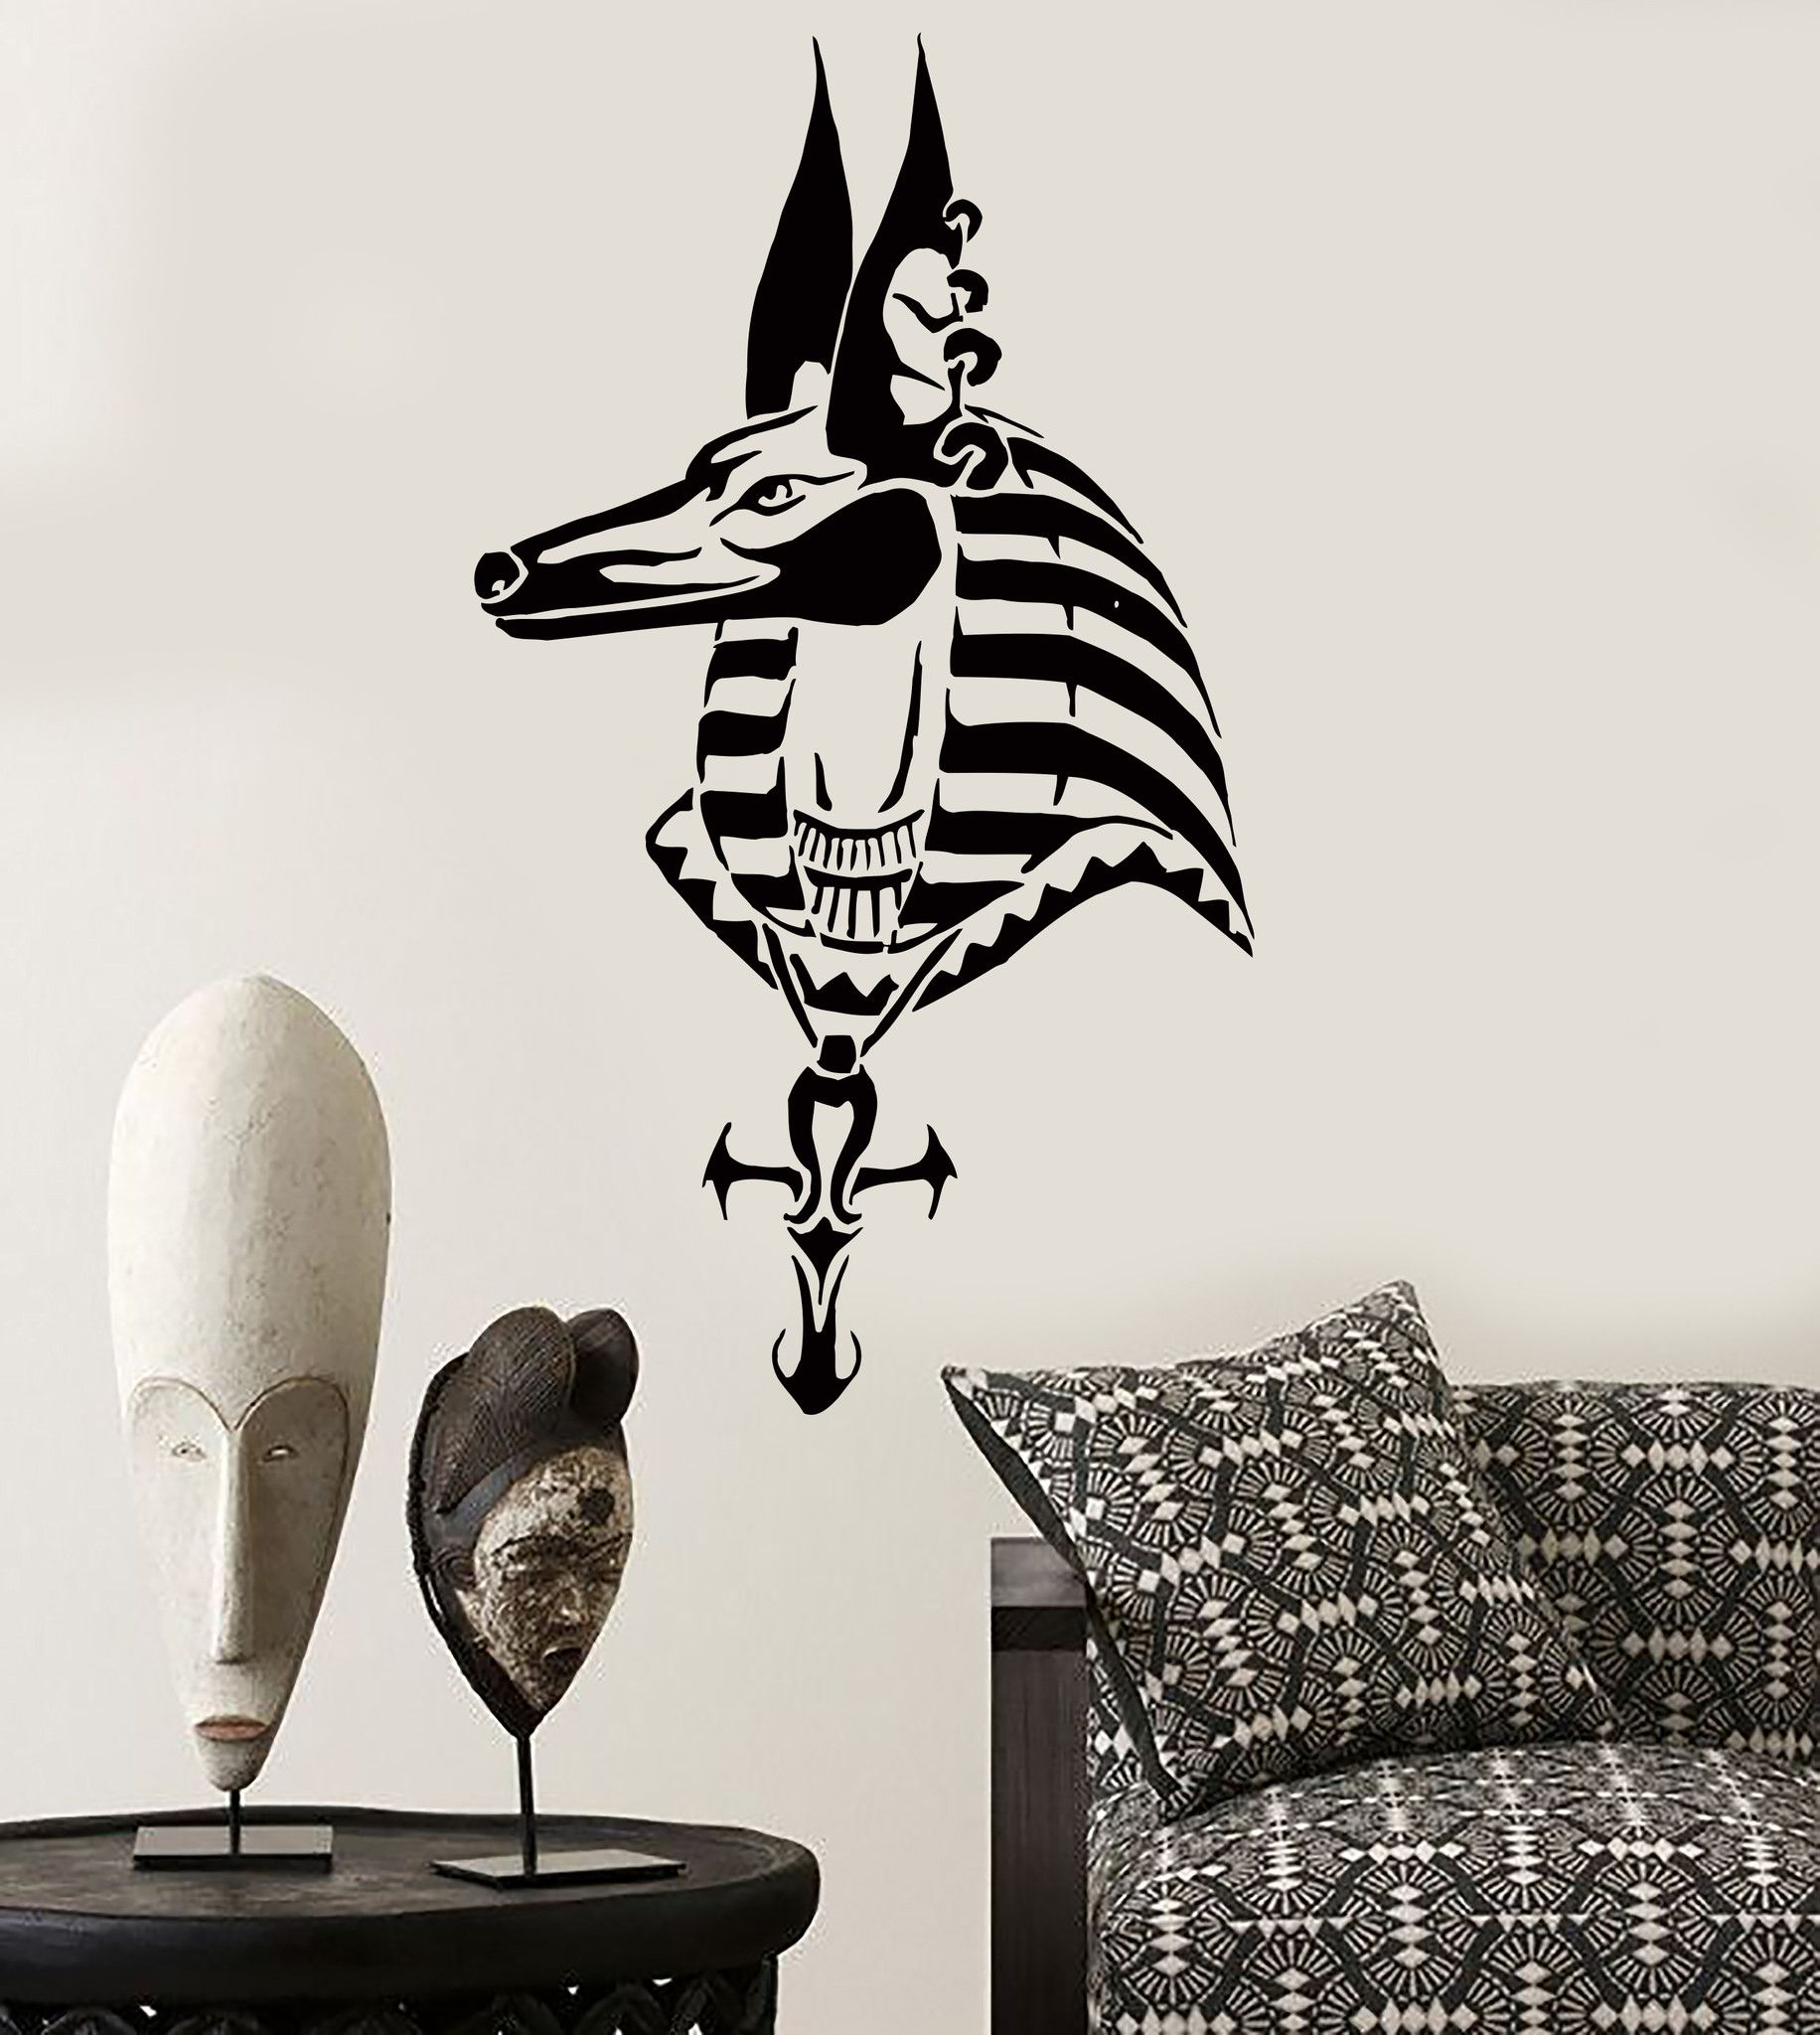 Wall Sticker Anubis Egypt Egyptian Mythology Decor For Bedroom Z2518